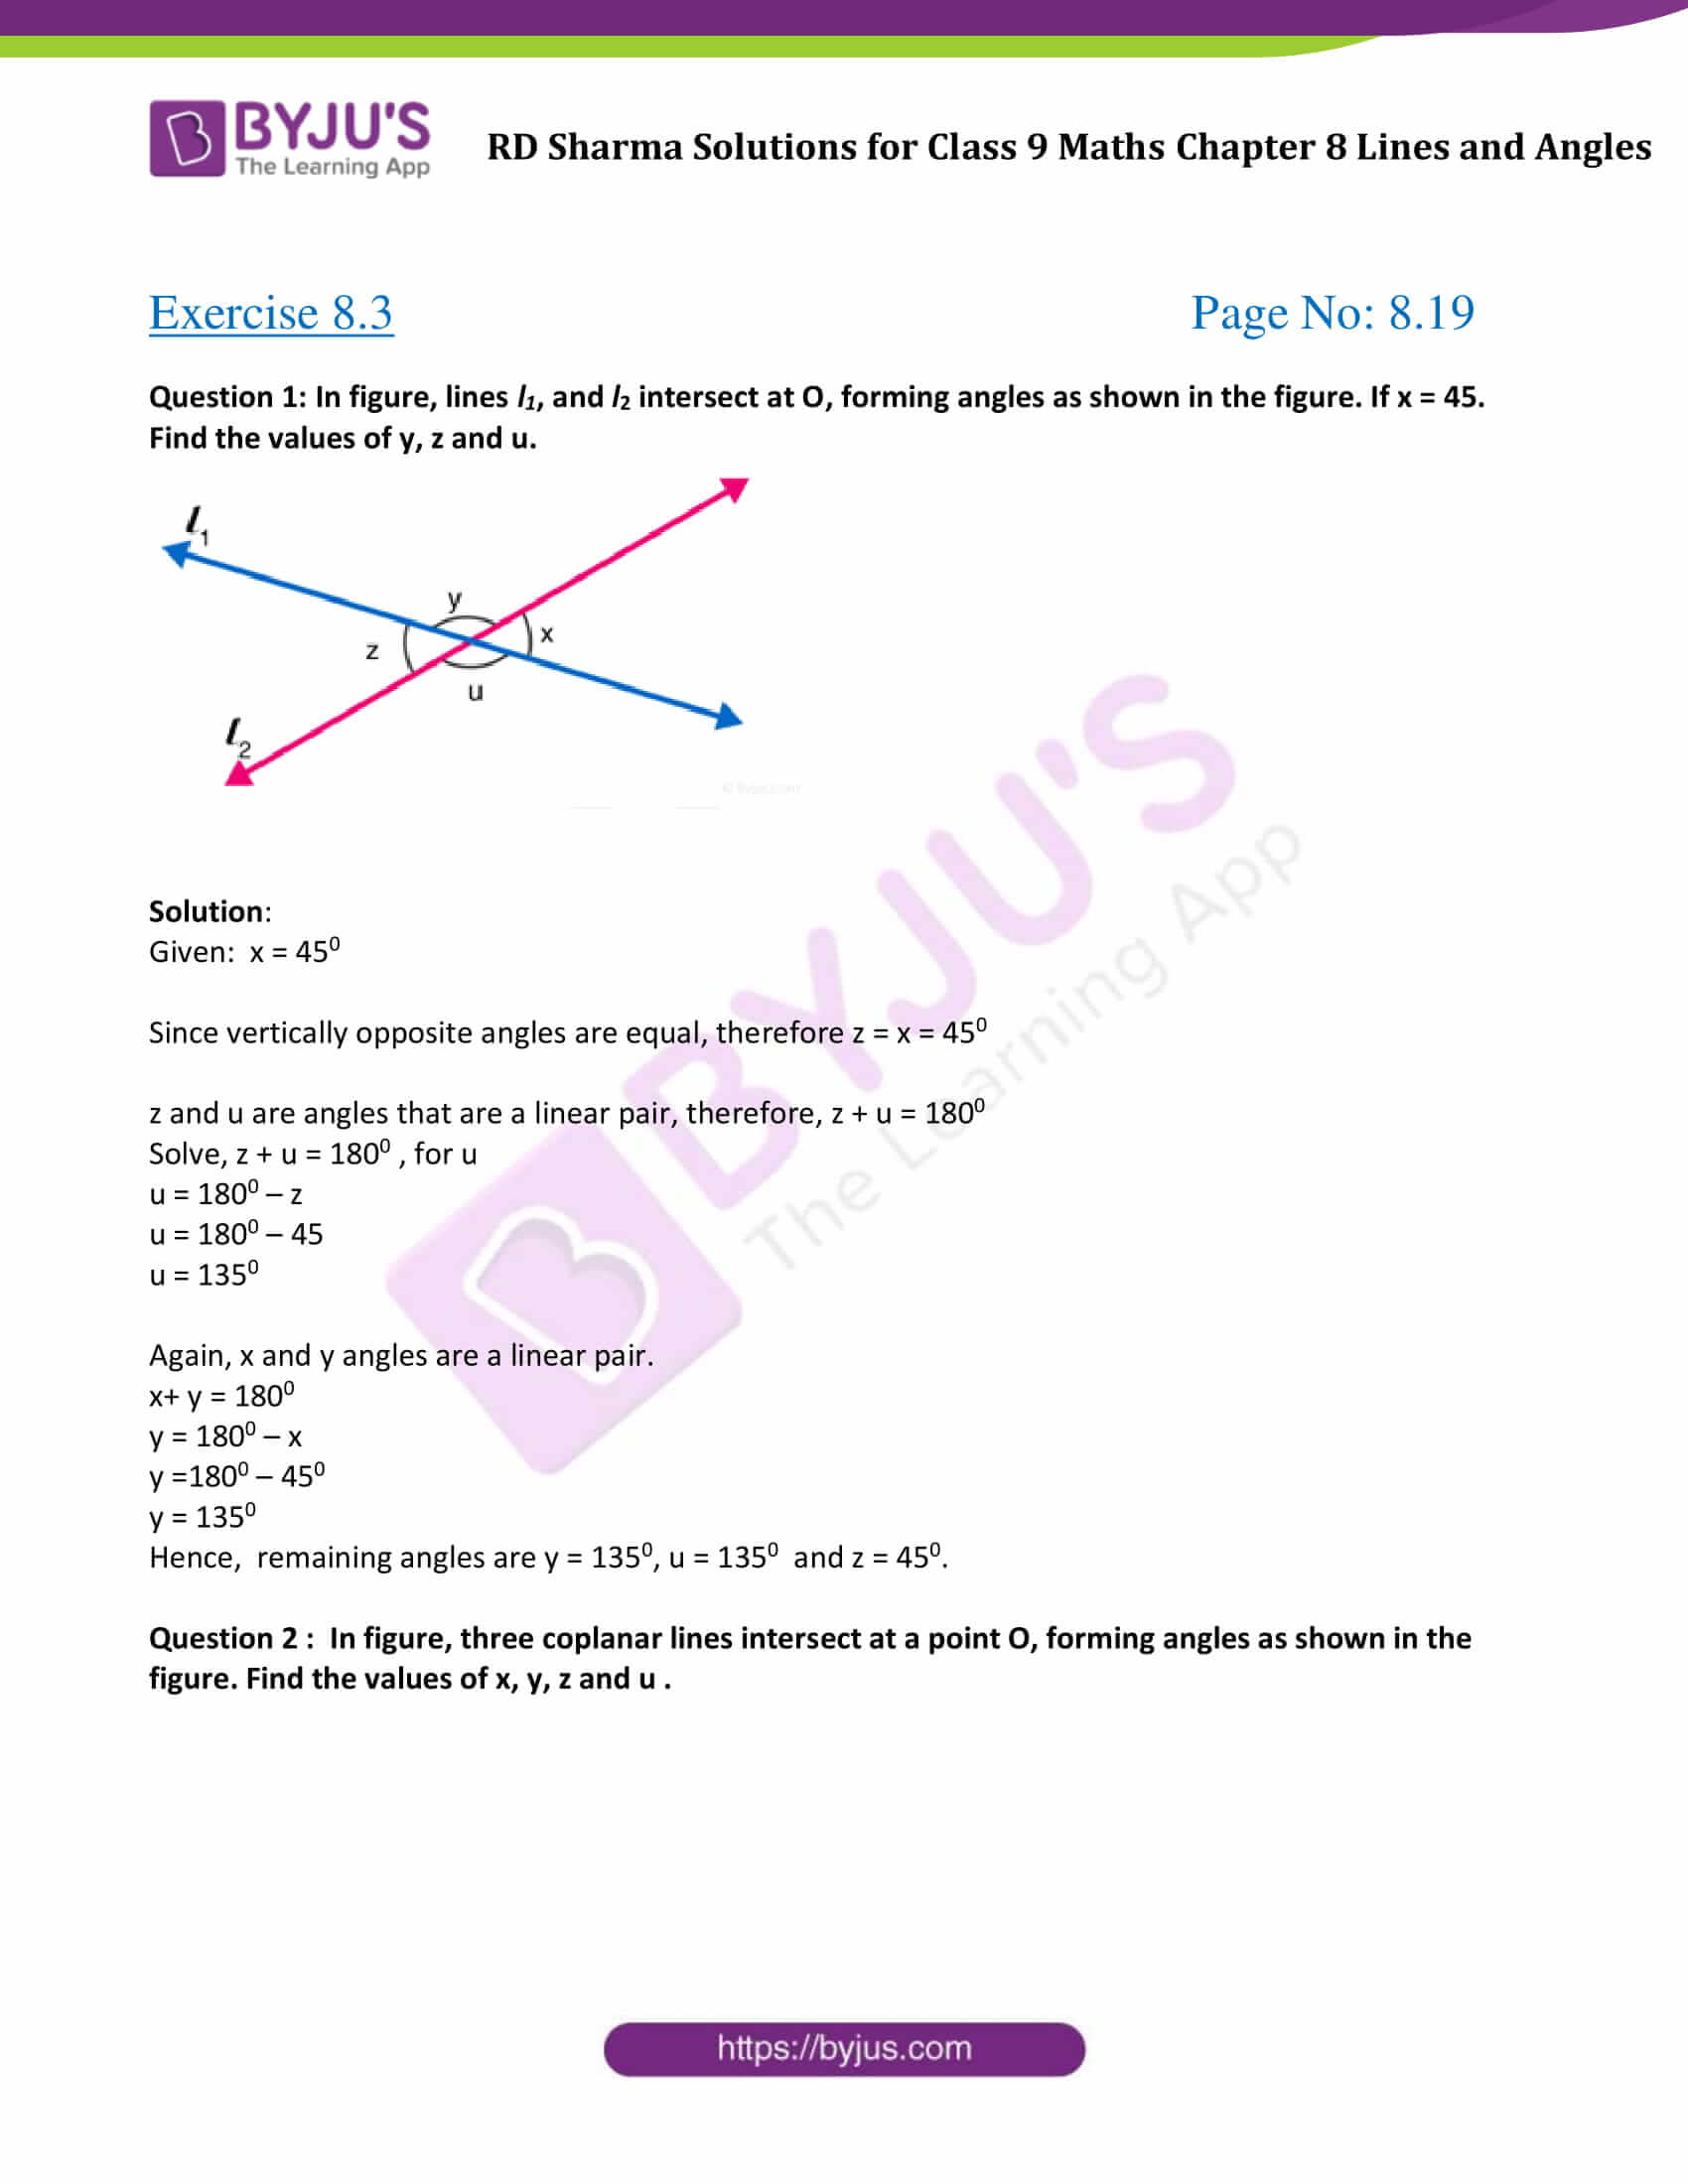 RD Sharma Solution class 9 Maths Chapter 8 Lines and Angles 11